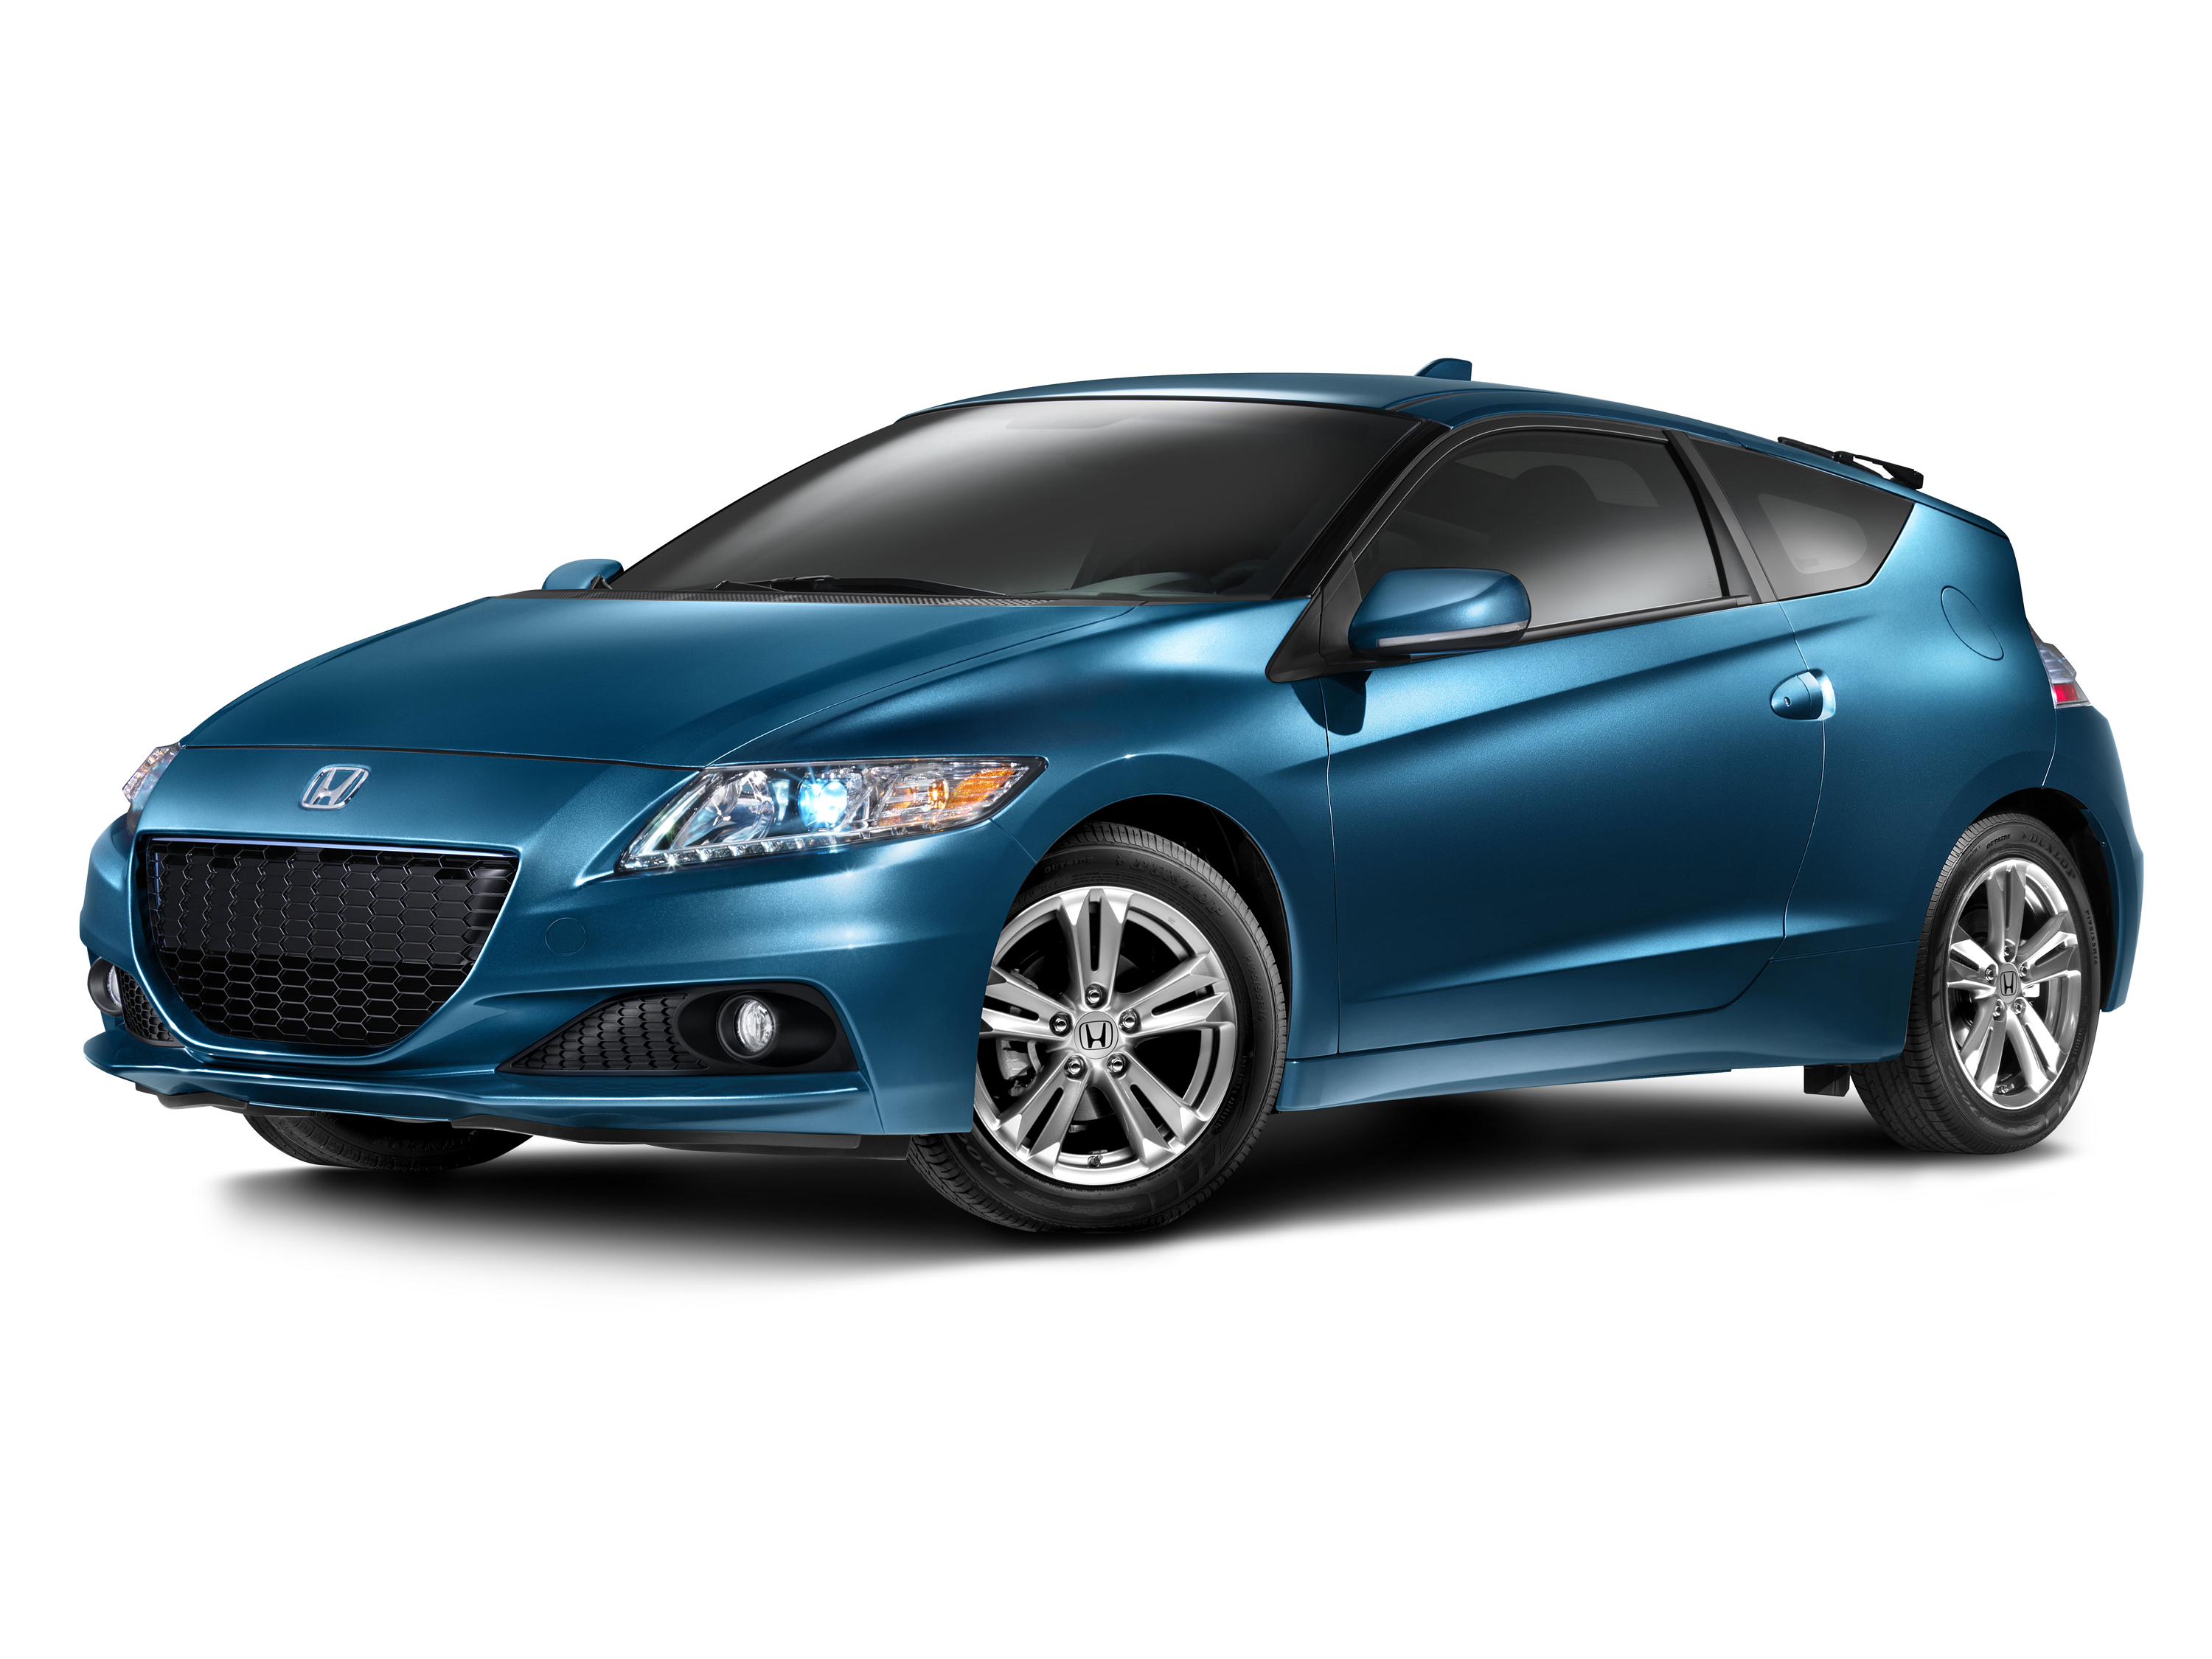 Honda Cr Z Sports Hybrid 2016 Exterior Side View